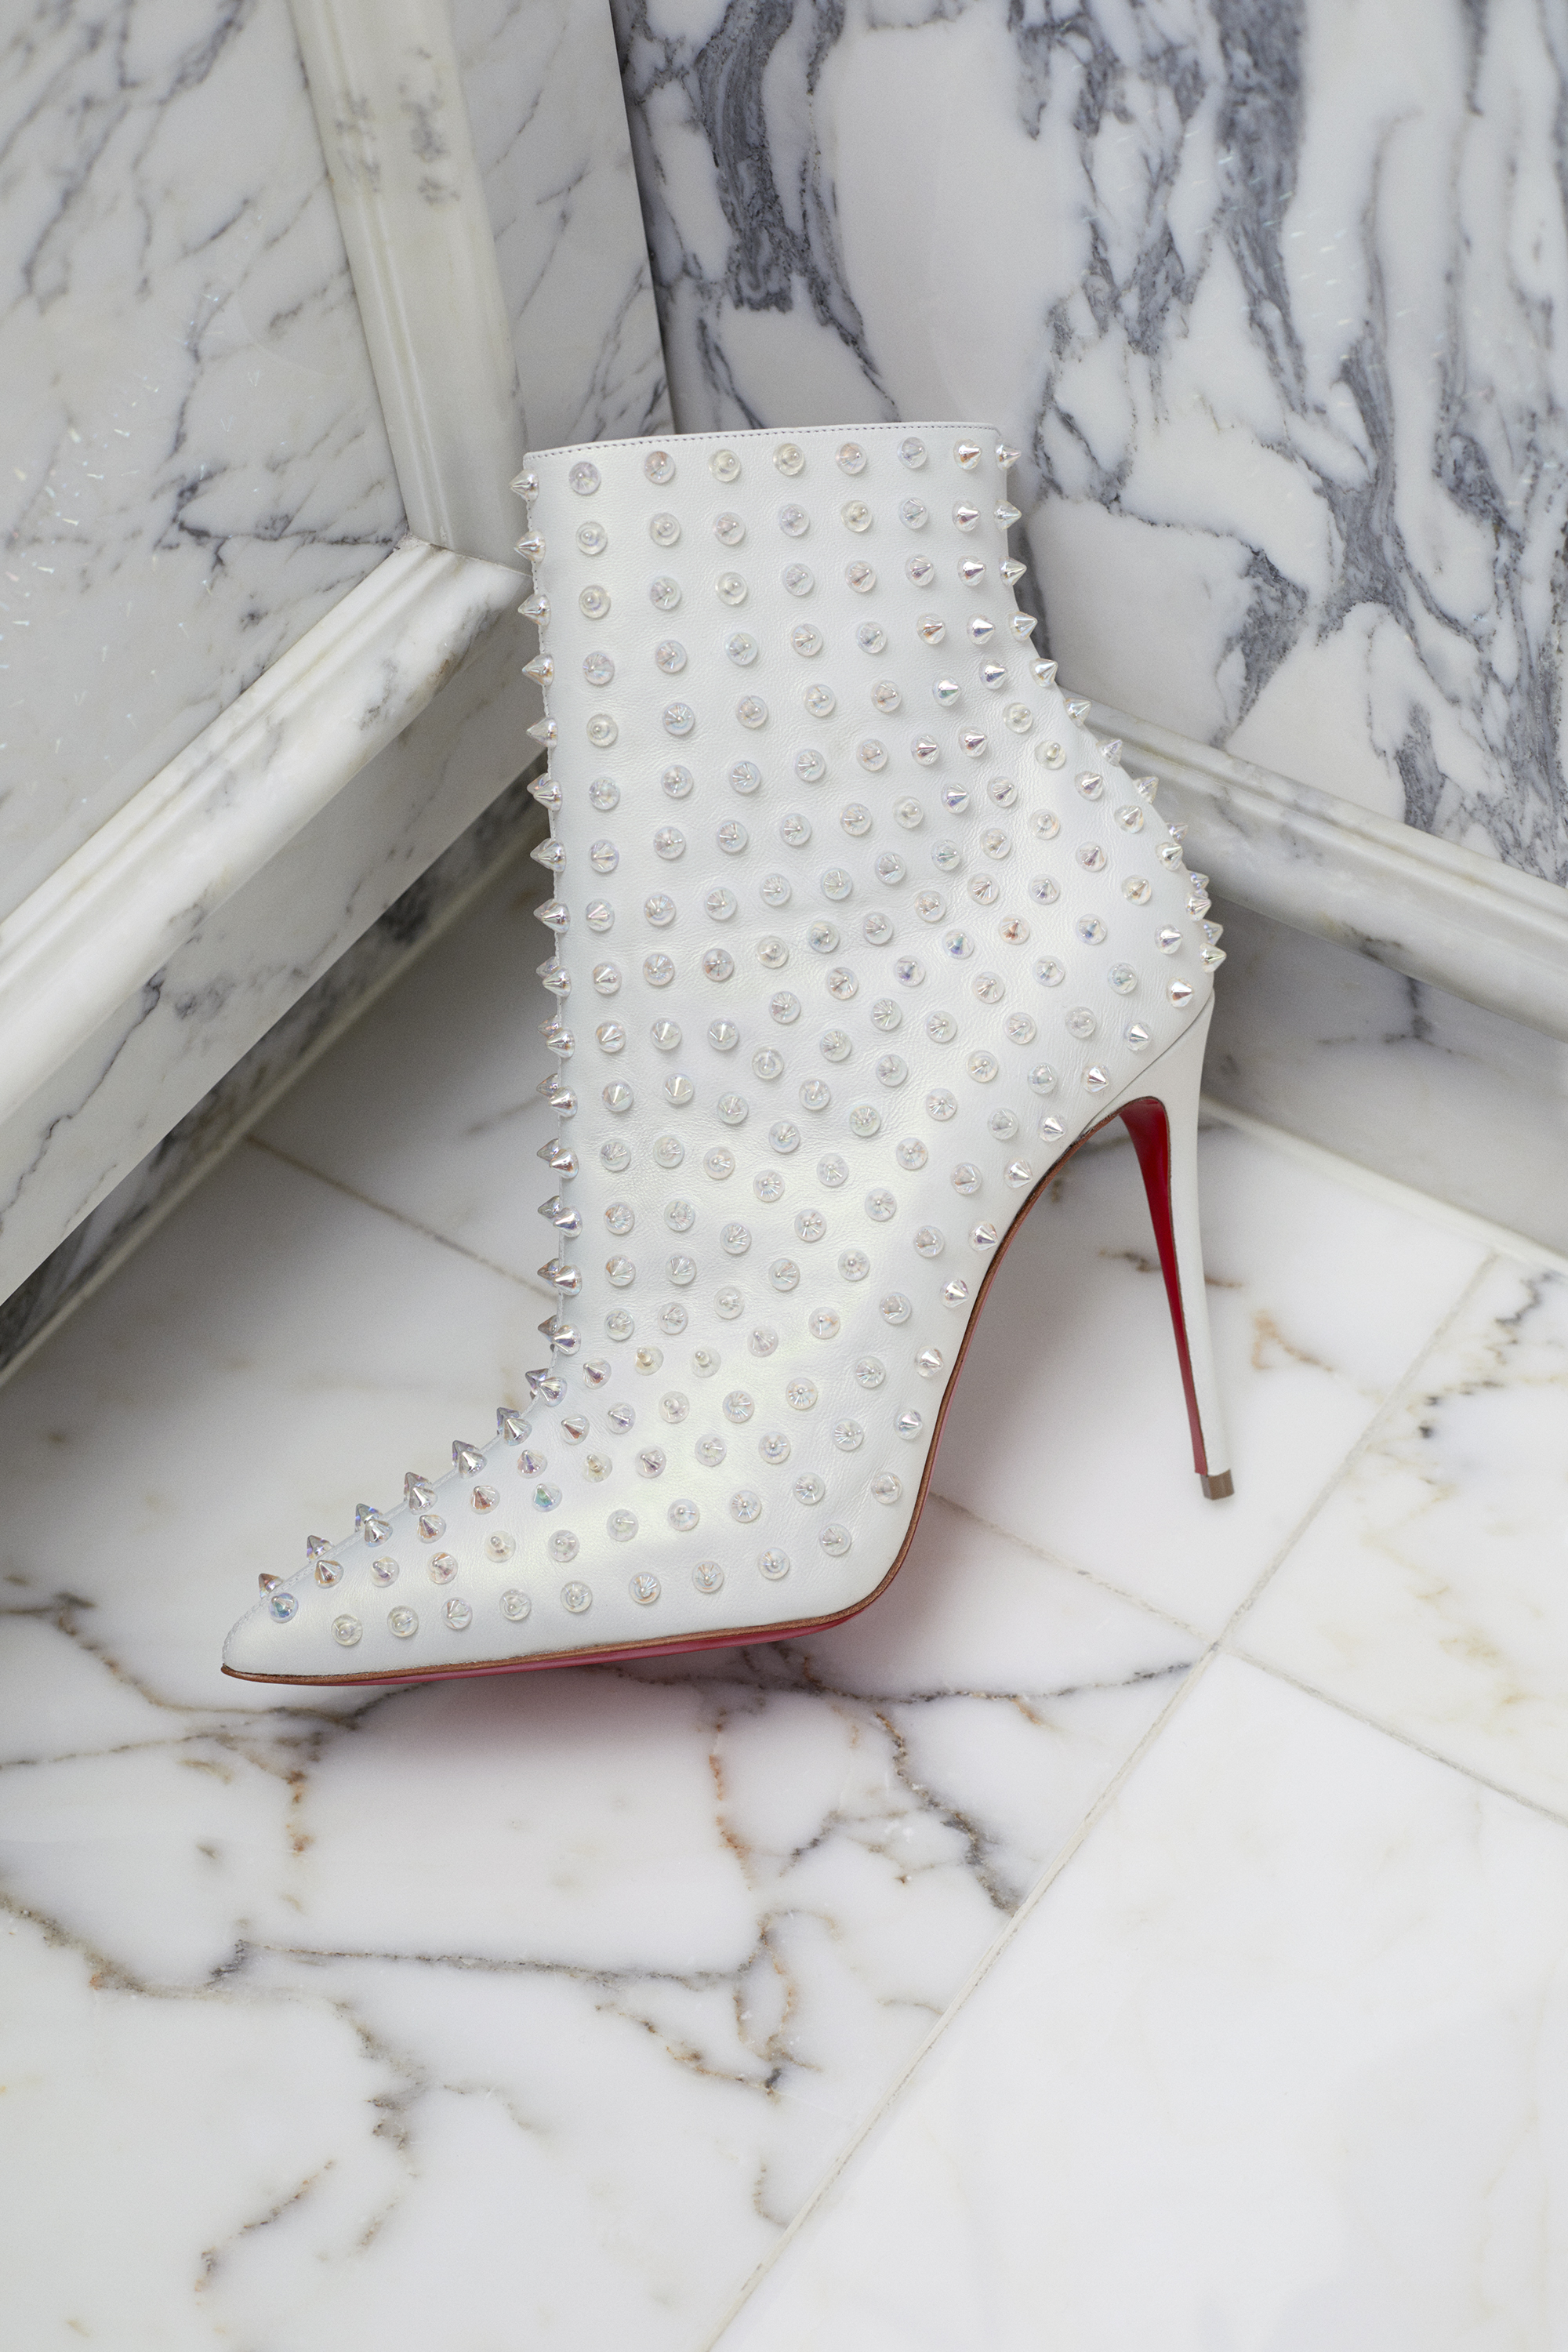 Mytheresa's exclusive capsule collection with Christian Louboutin is now available (фото 5)